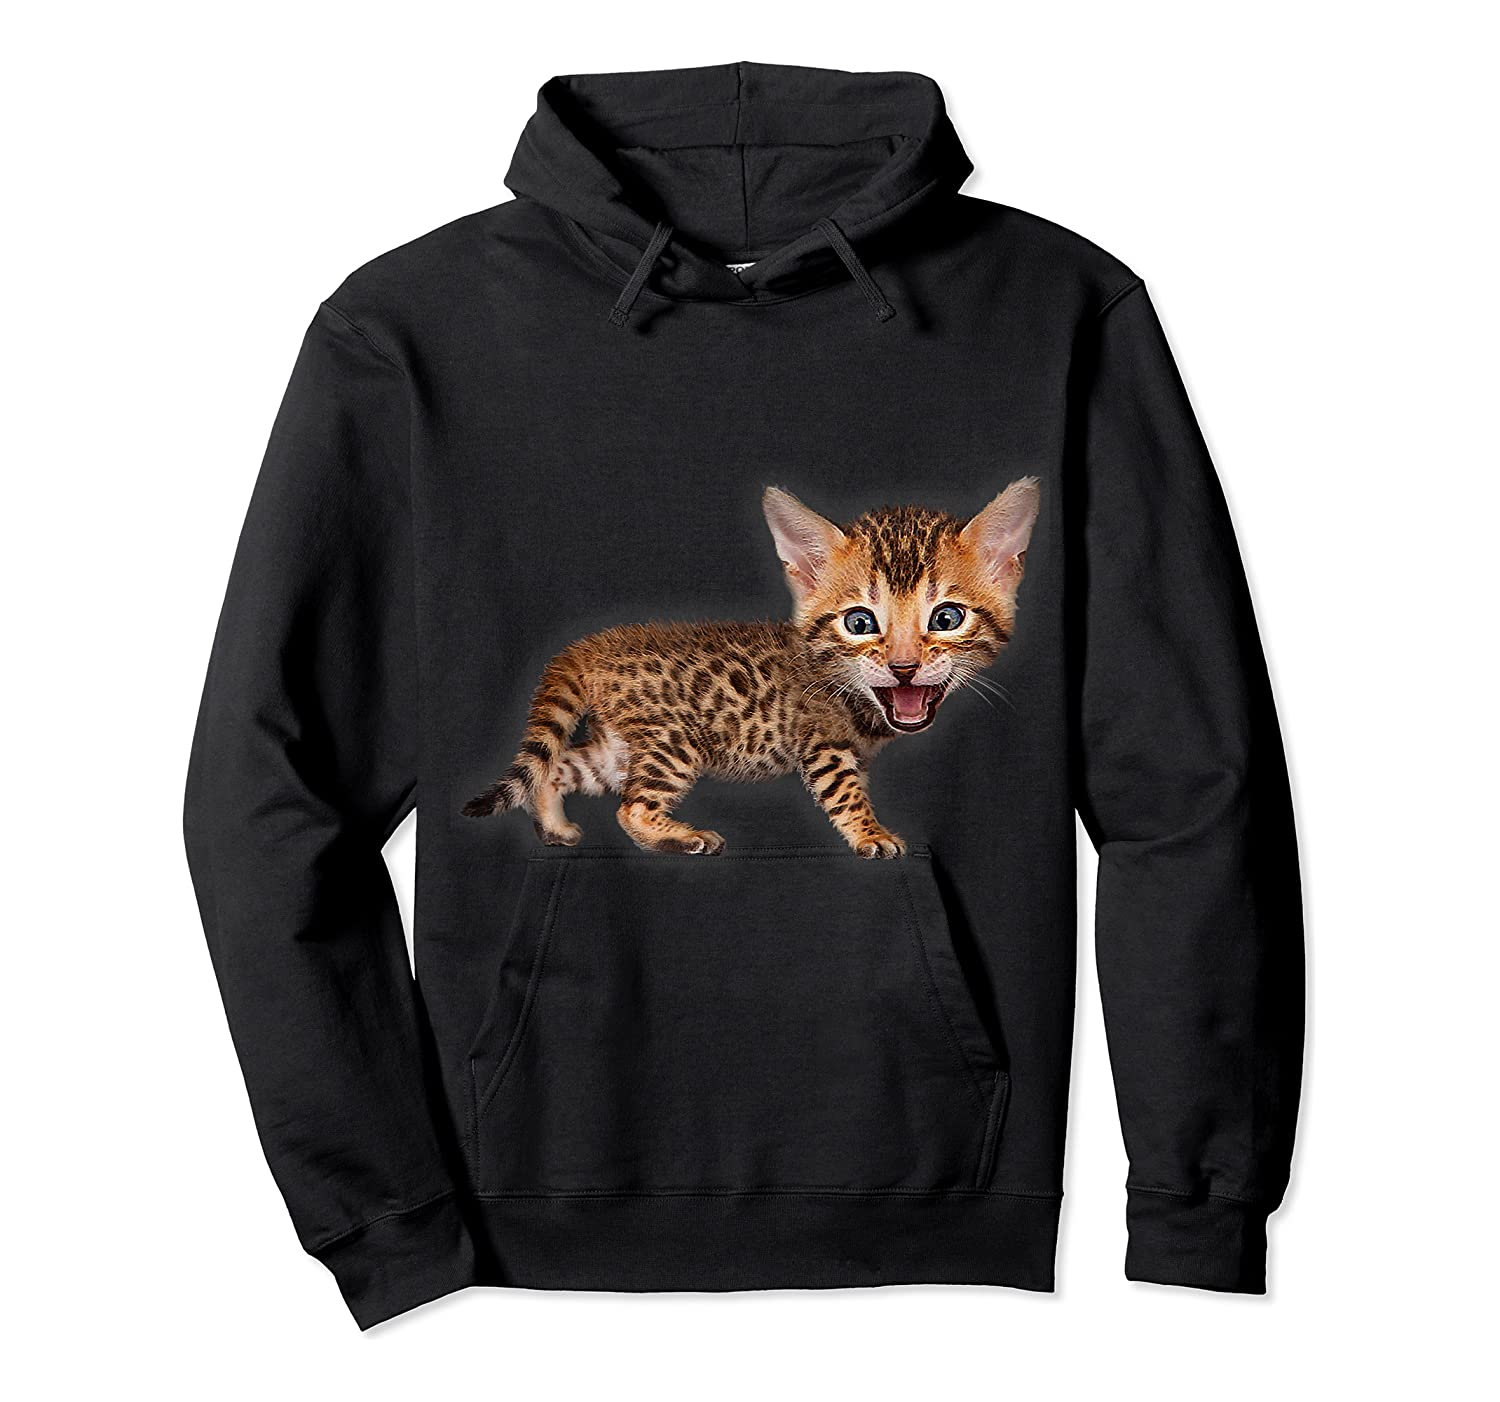 Cat Caricature - Funny Domestic Bengal Cat Kitten Tshirt Unisex Pullover Hoodie